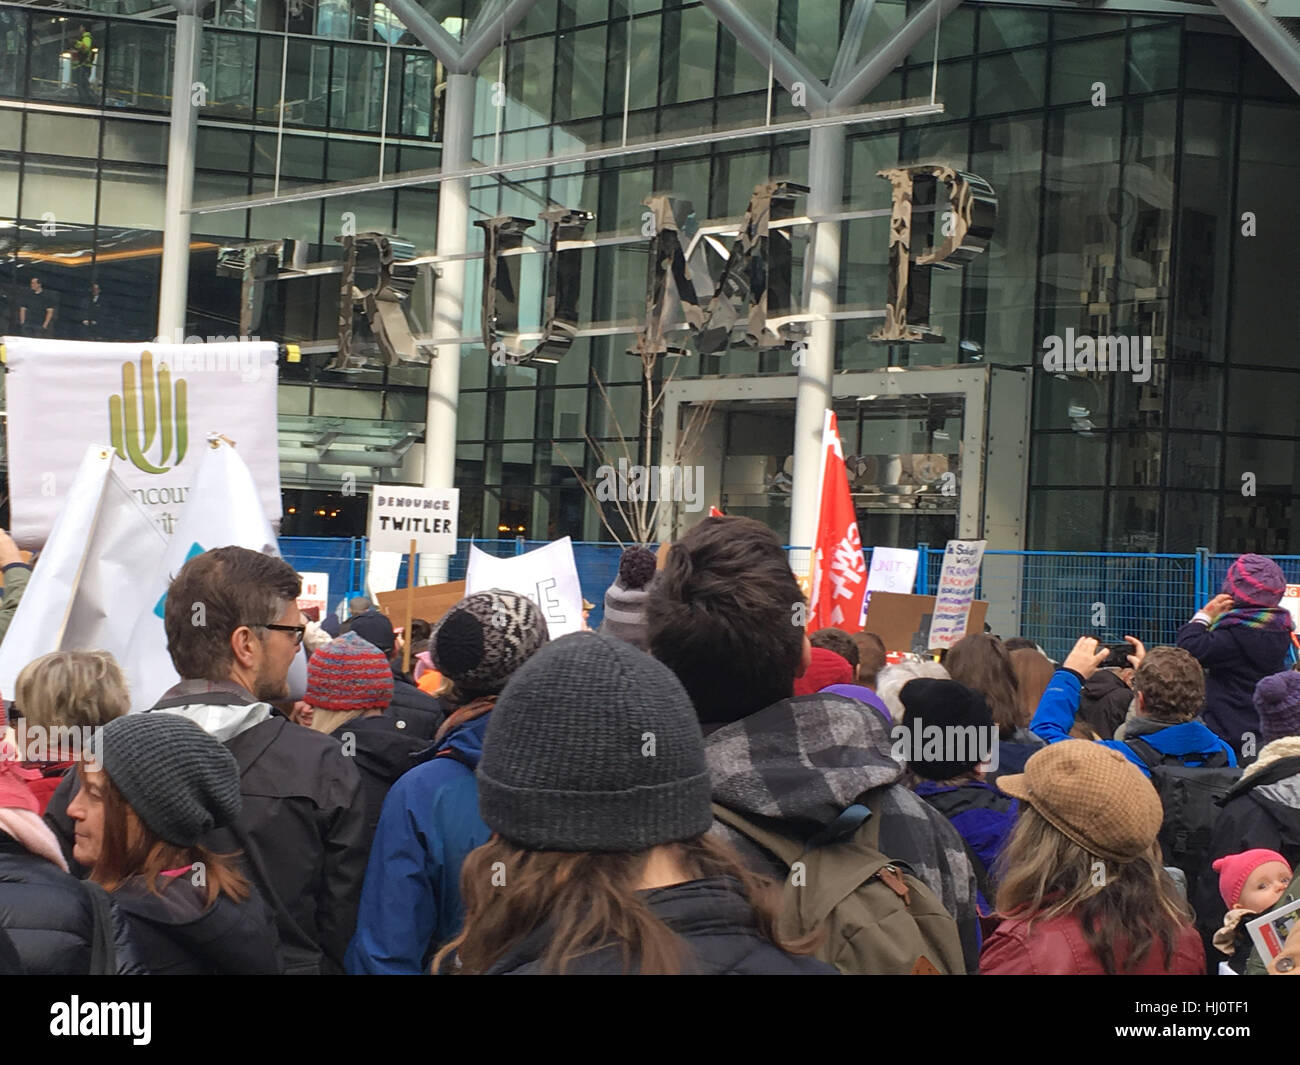 Vancouver, British Columbia, Canada. 21st January, 2017. Over 15,000 people attended the Women's March in Vancouver, - Stock Image